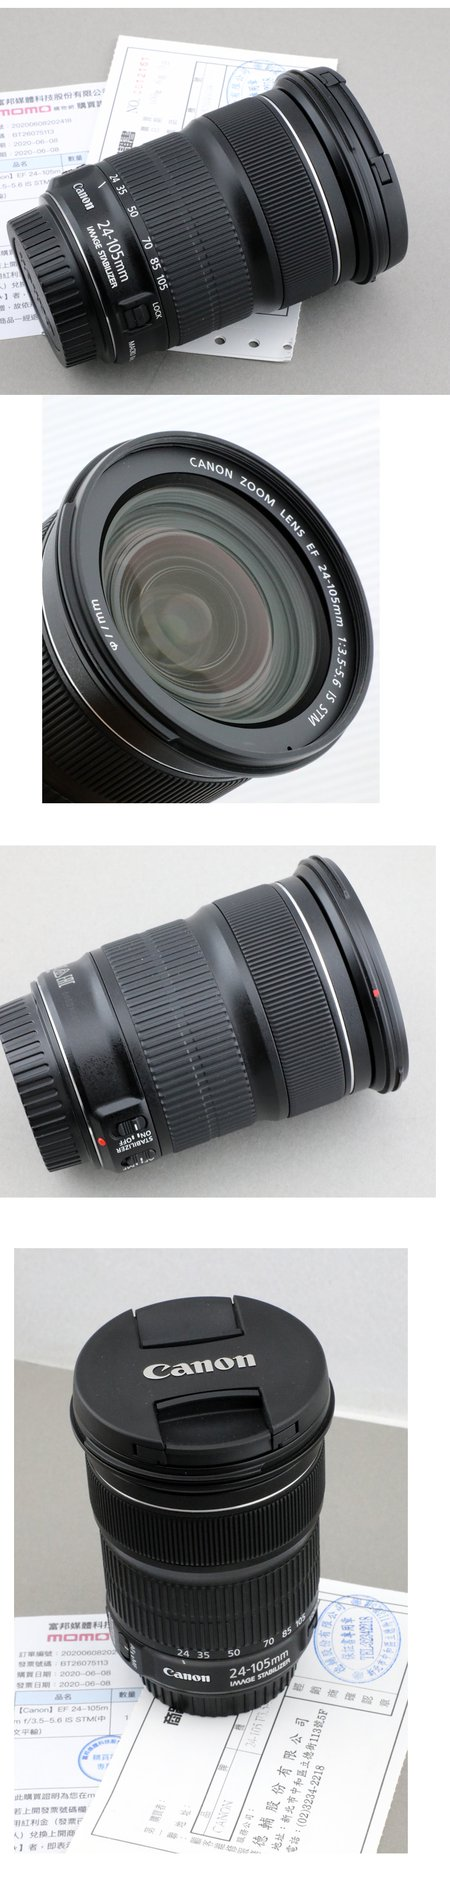 Canon EF 24-105mm f3.5-5.6  IS STM 不是 IS L